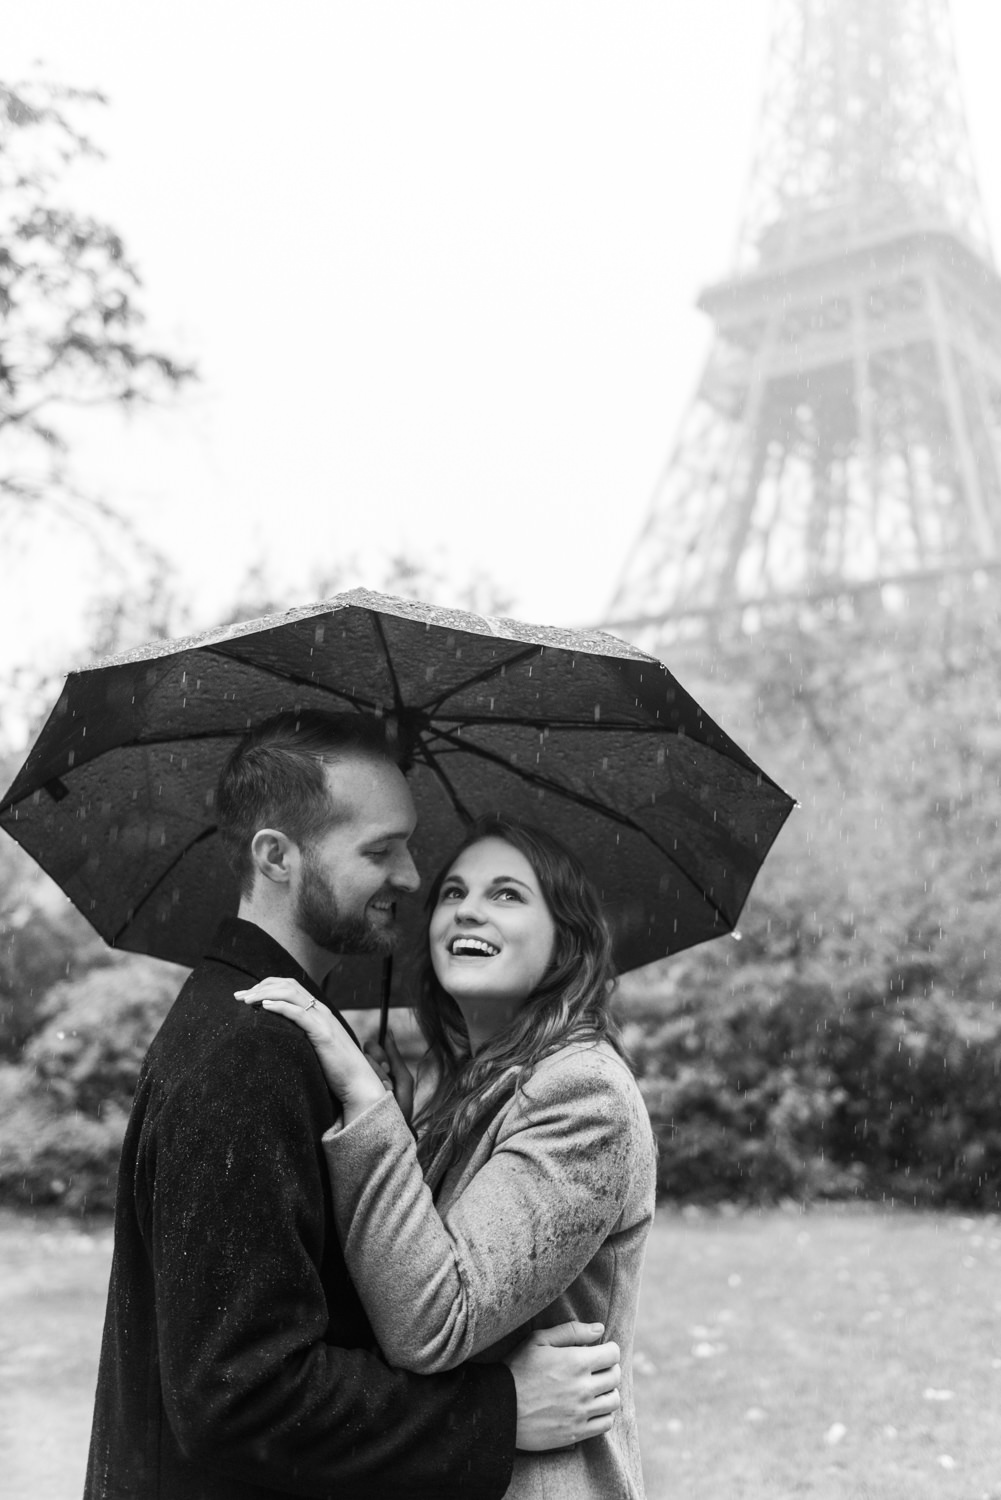 American couple photographed on the foot of the Eiffel Tower, by an English speaking couple shoot photographer in Paris